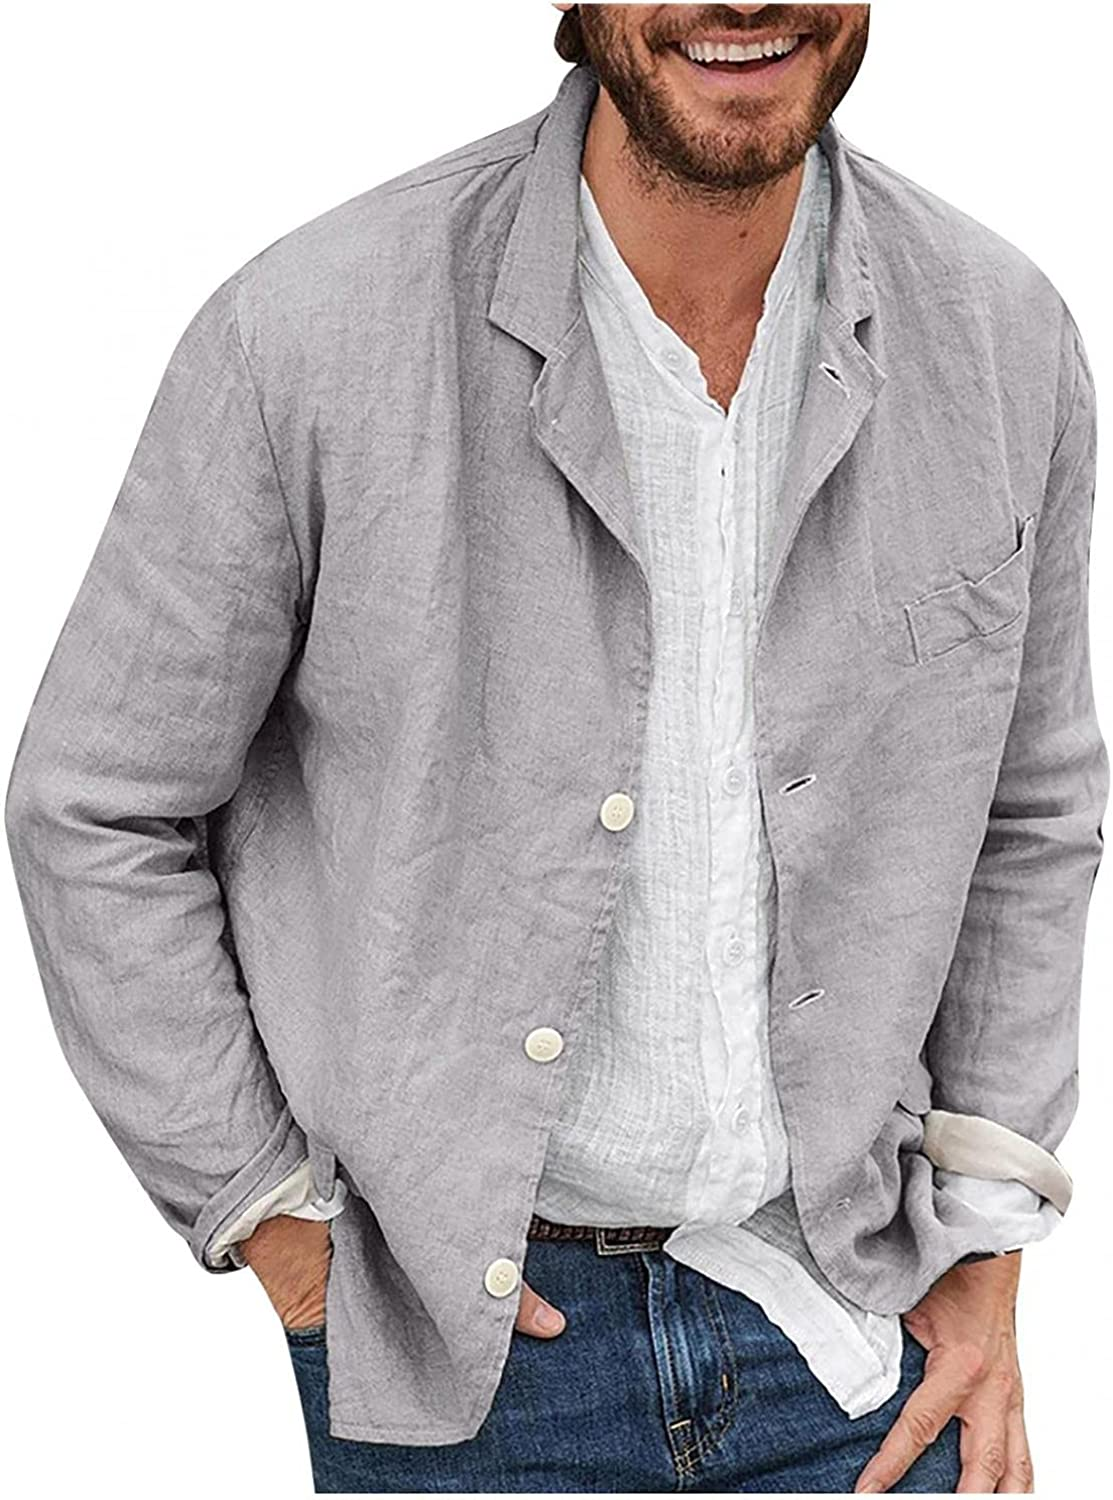 Men's Cotton Linen Blazer Lightweight Long Sleeve Button Down Lapel Jacket Casual Solid Loose Fit Outwear with Pocket